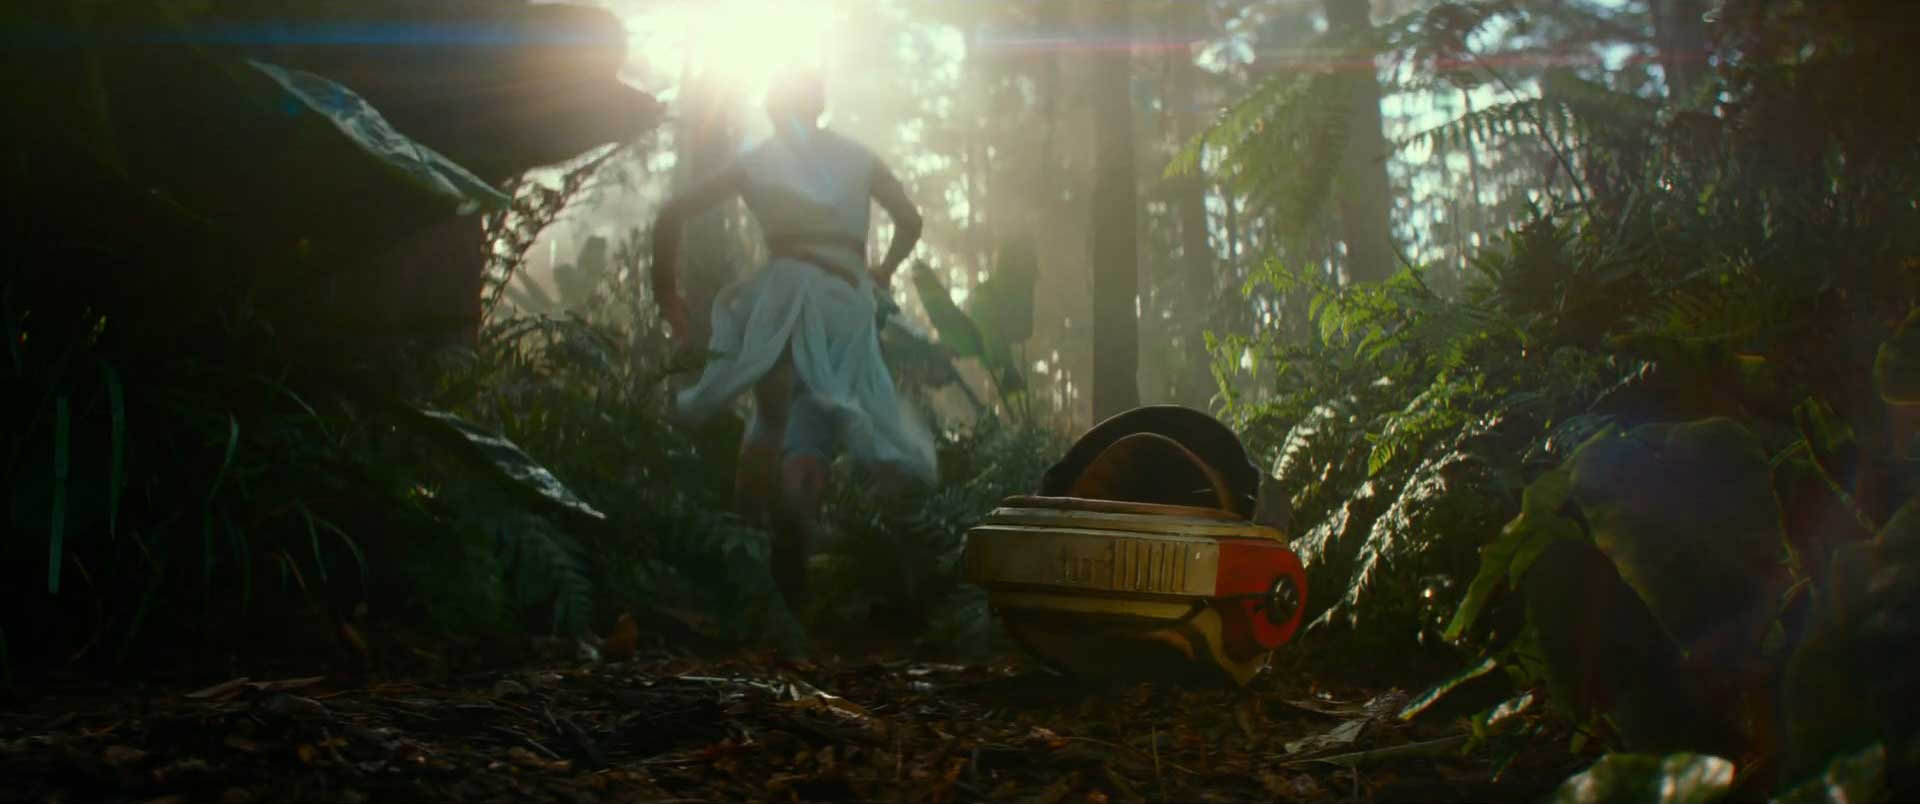 star wars trailer - photo #45